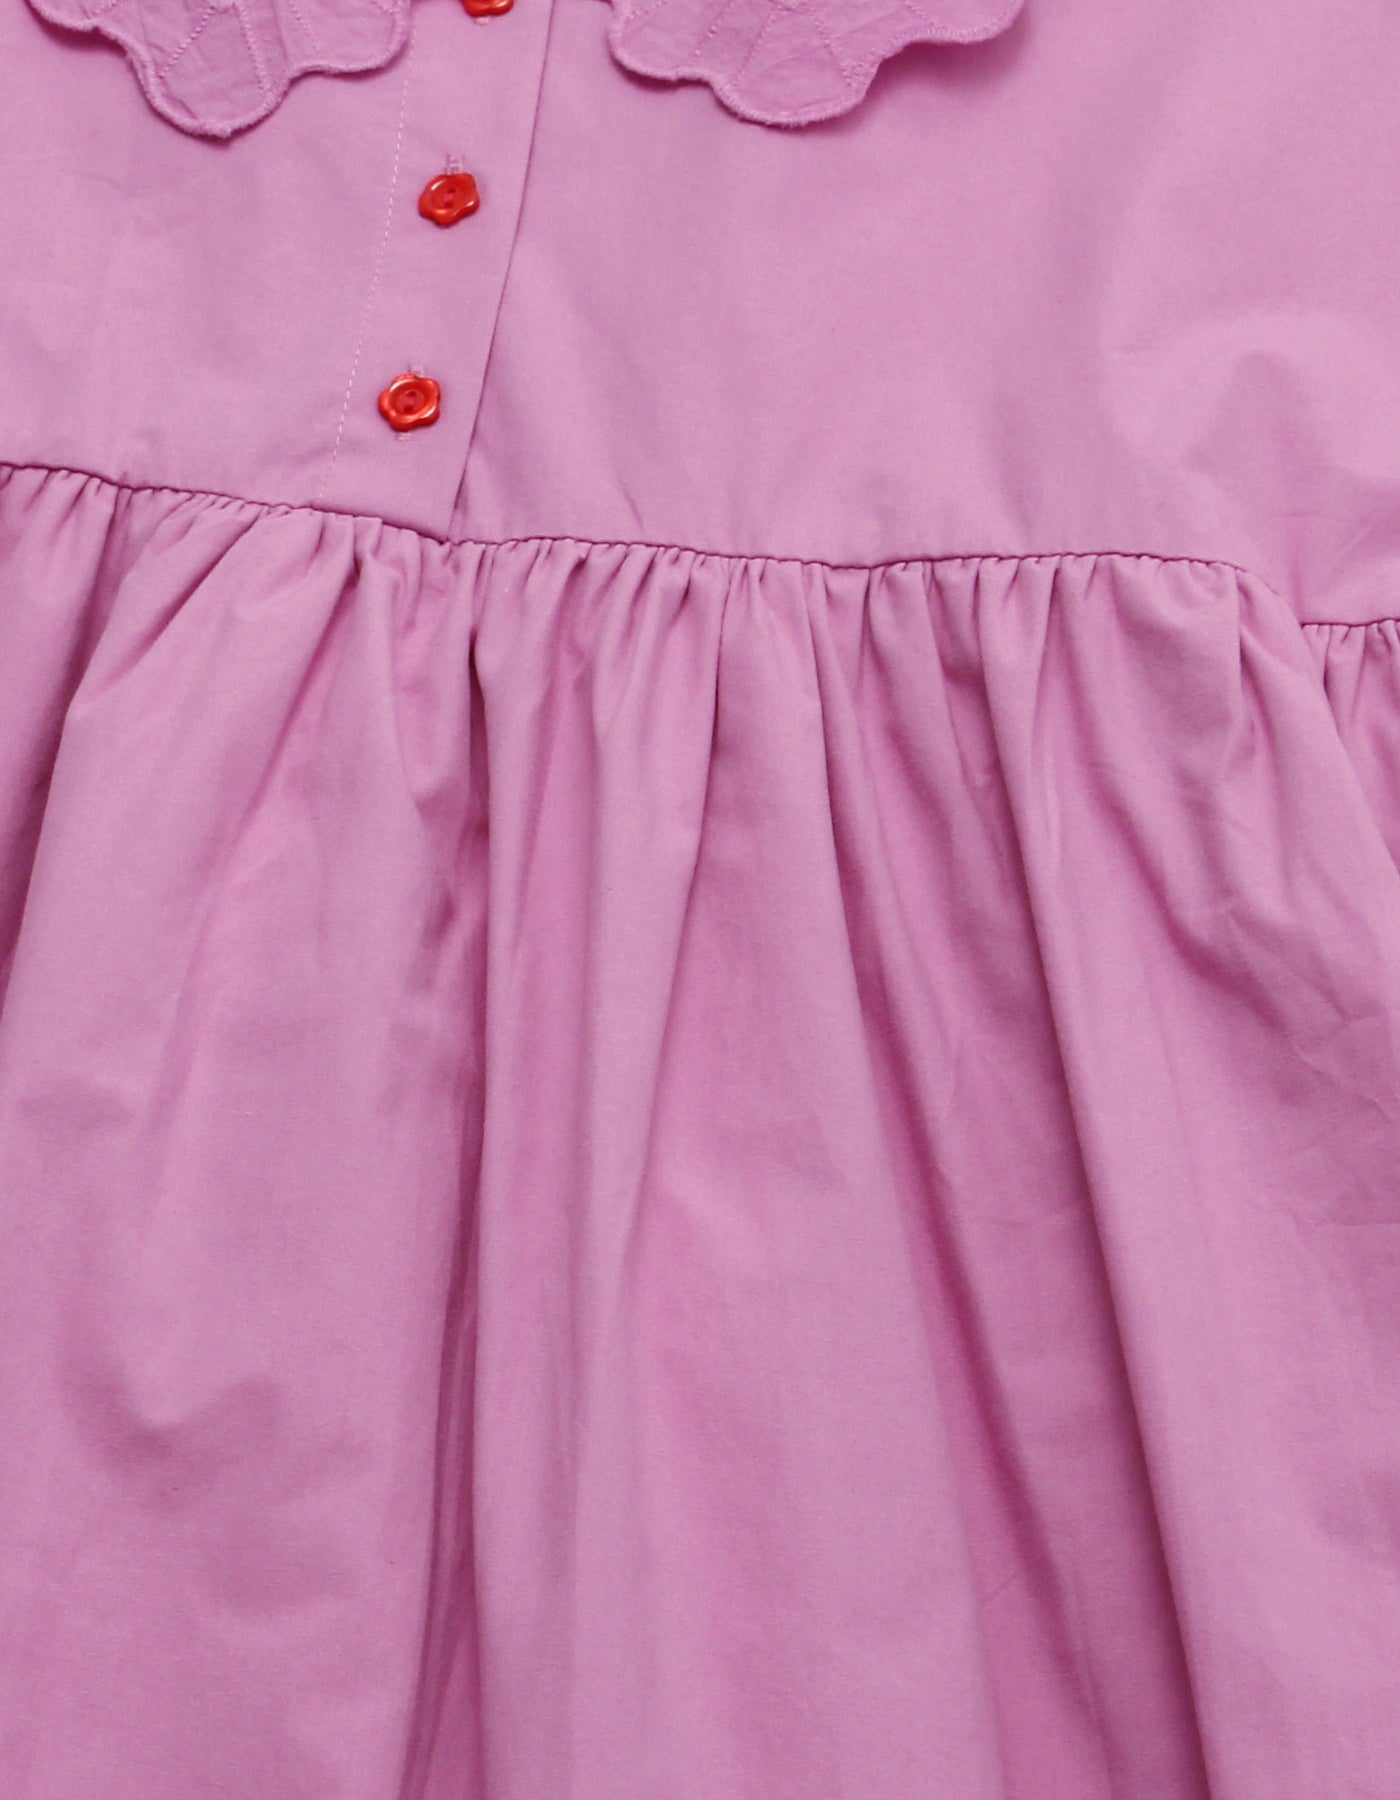 Girly short dress / PINK